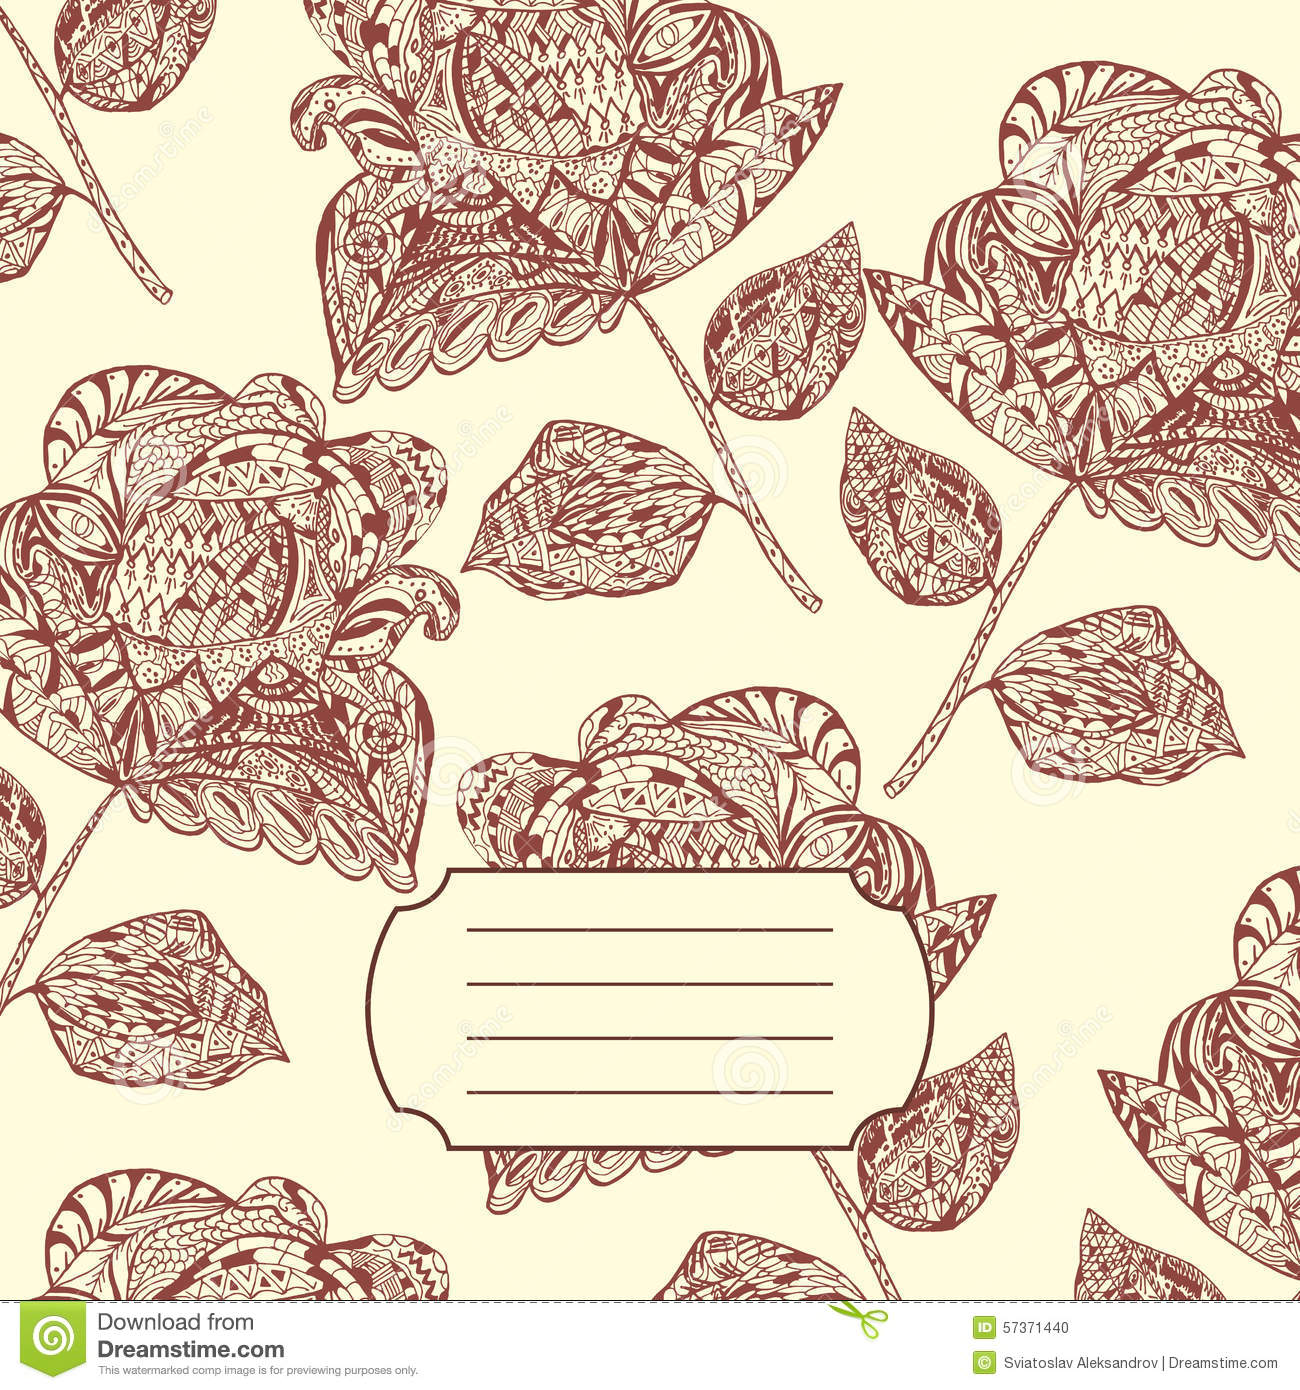 Design Of Notebook Cover With Hand Drawn Doodle Ethnic Flowers P